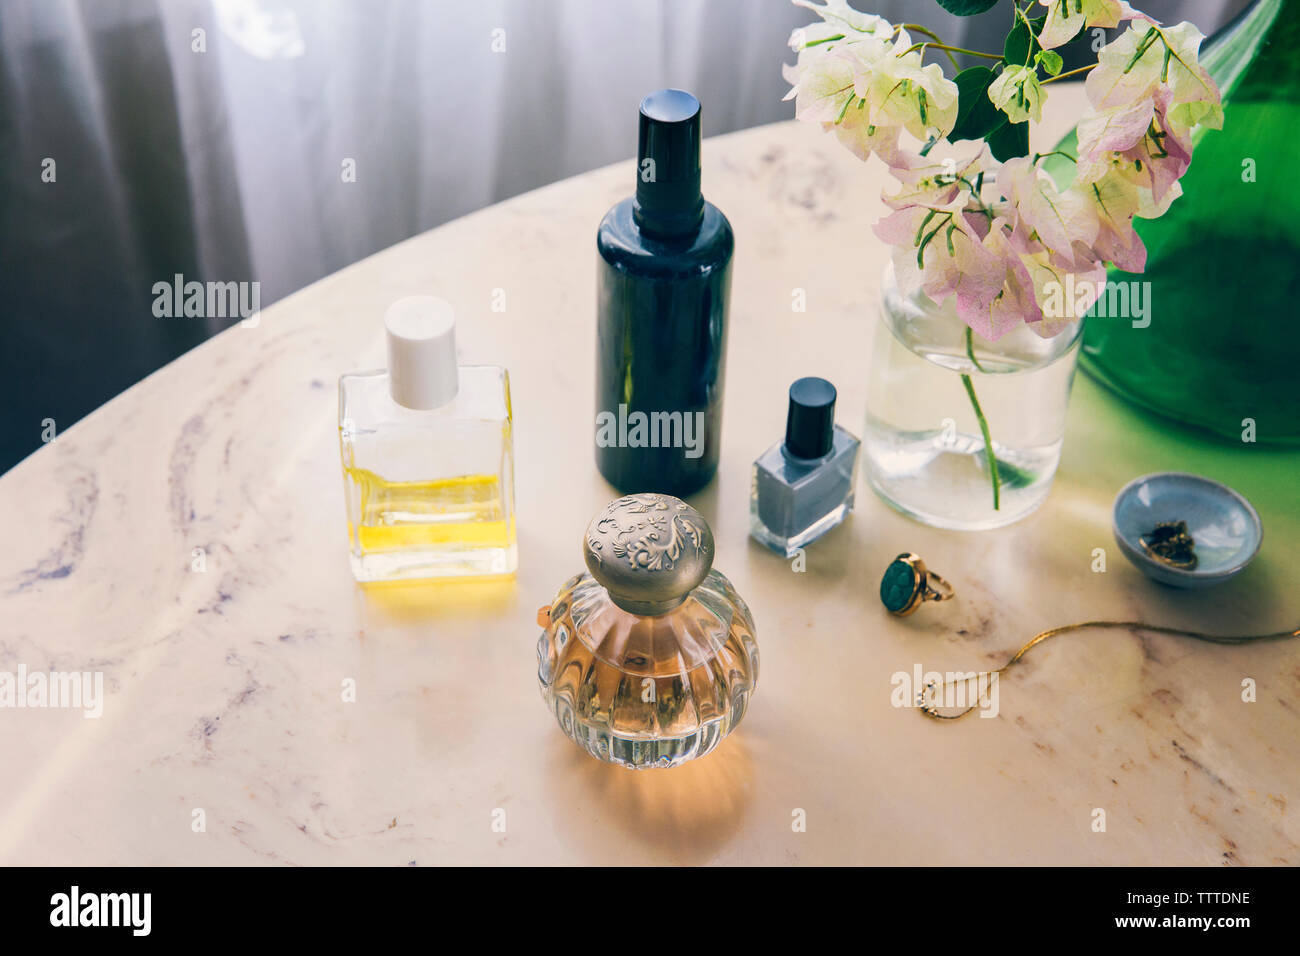 High angle view of beauty products with jewelry by flower vase on table Stock Photo